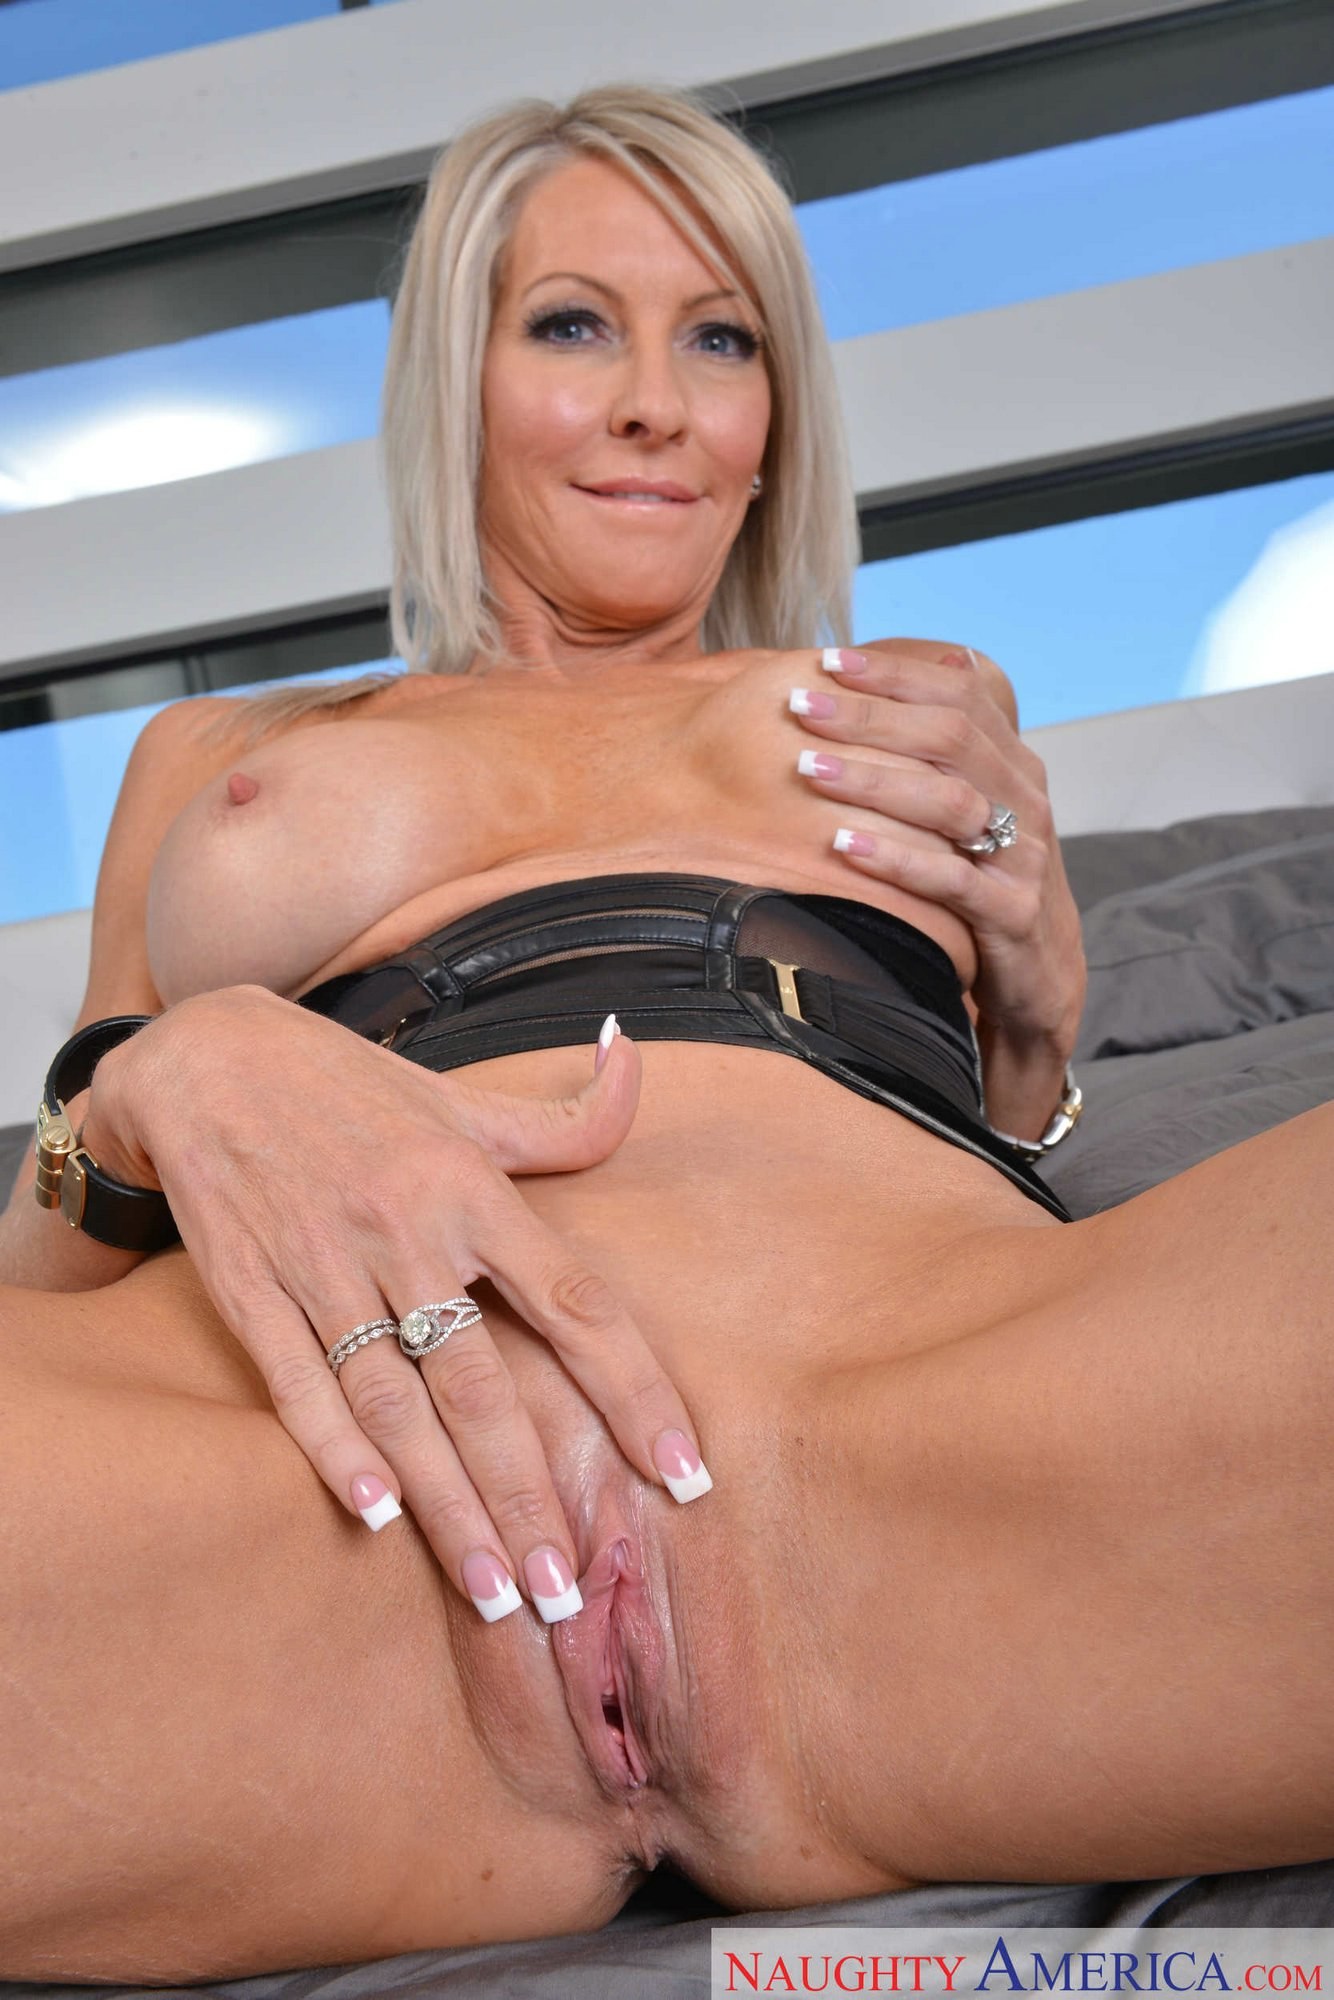 Hot blonde milf emma starr gets filled with cum by a big dick